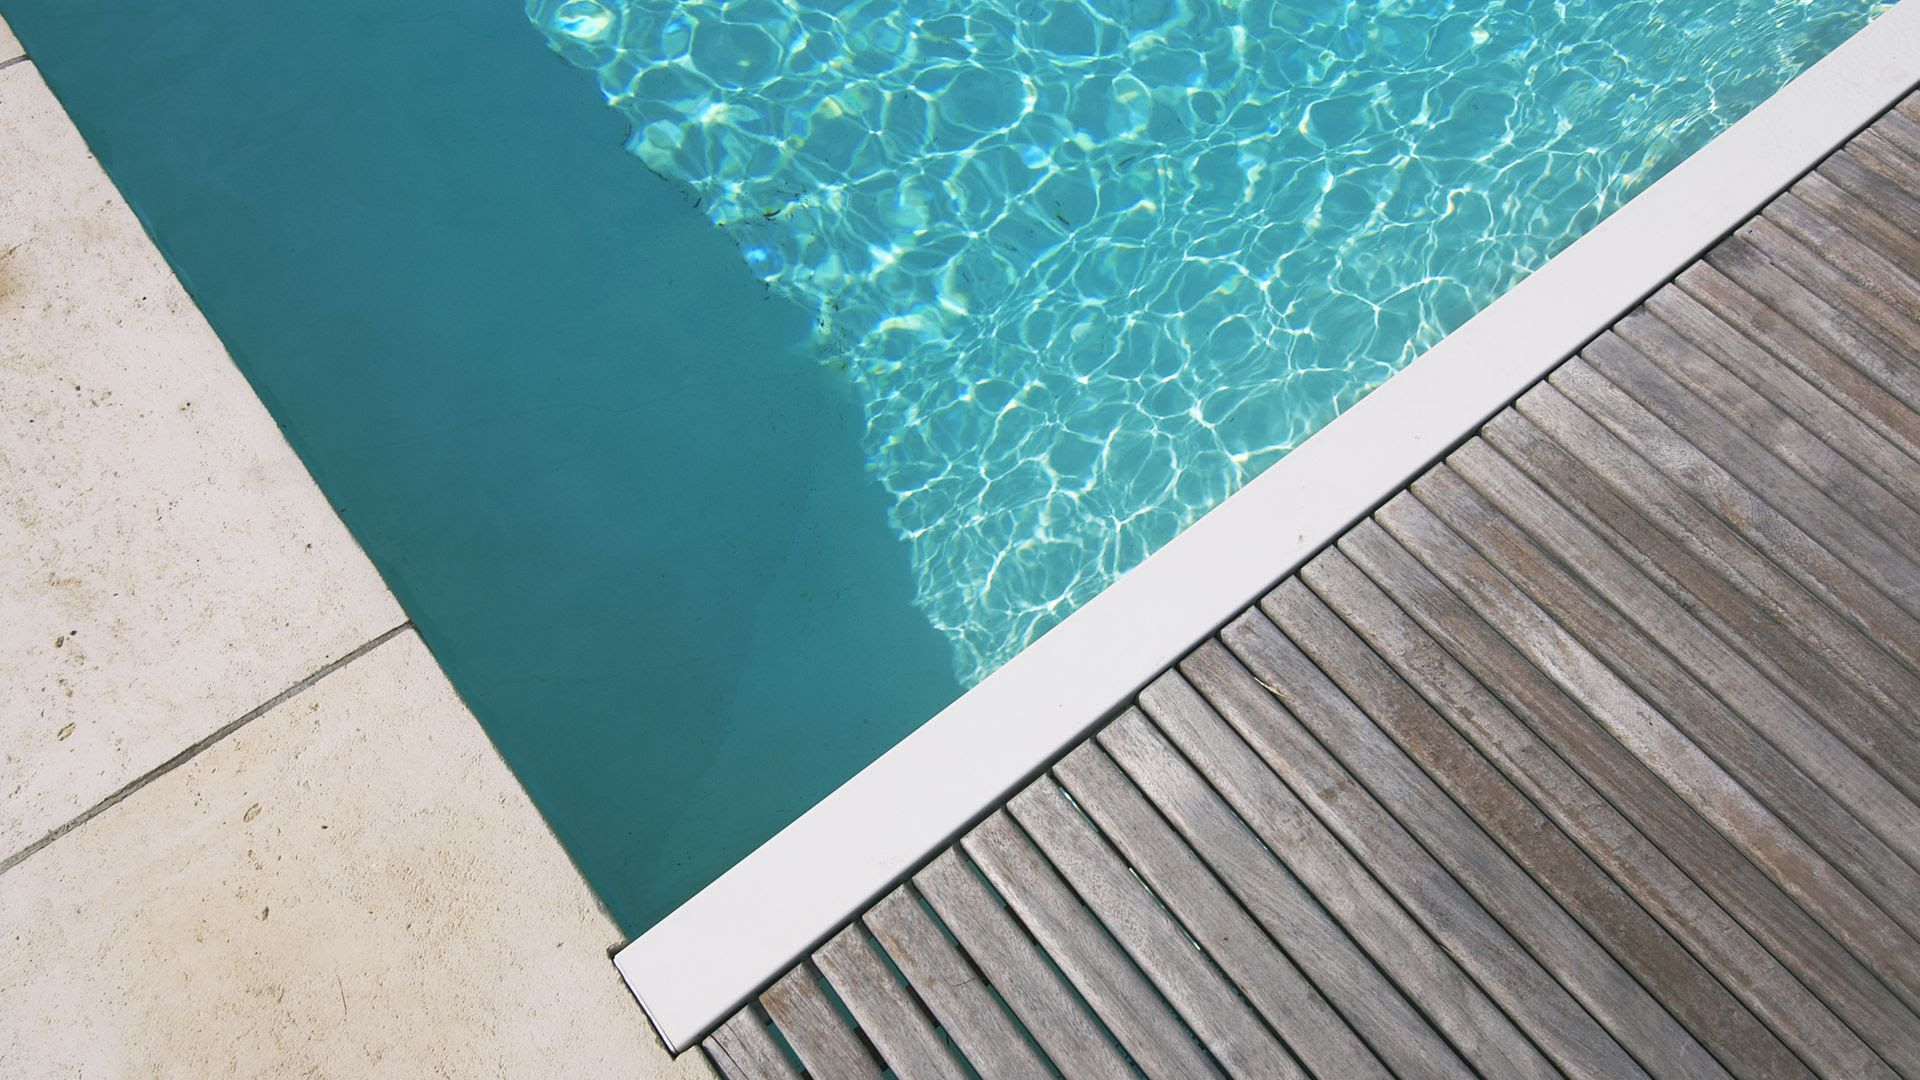 The corner of a generic pool in an unknown location.